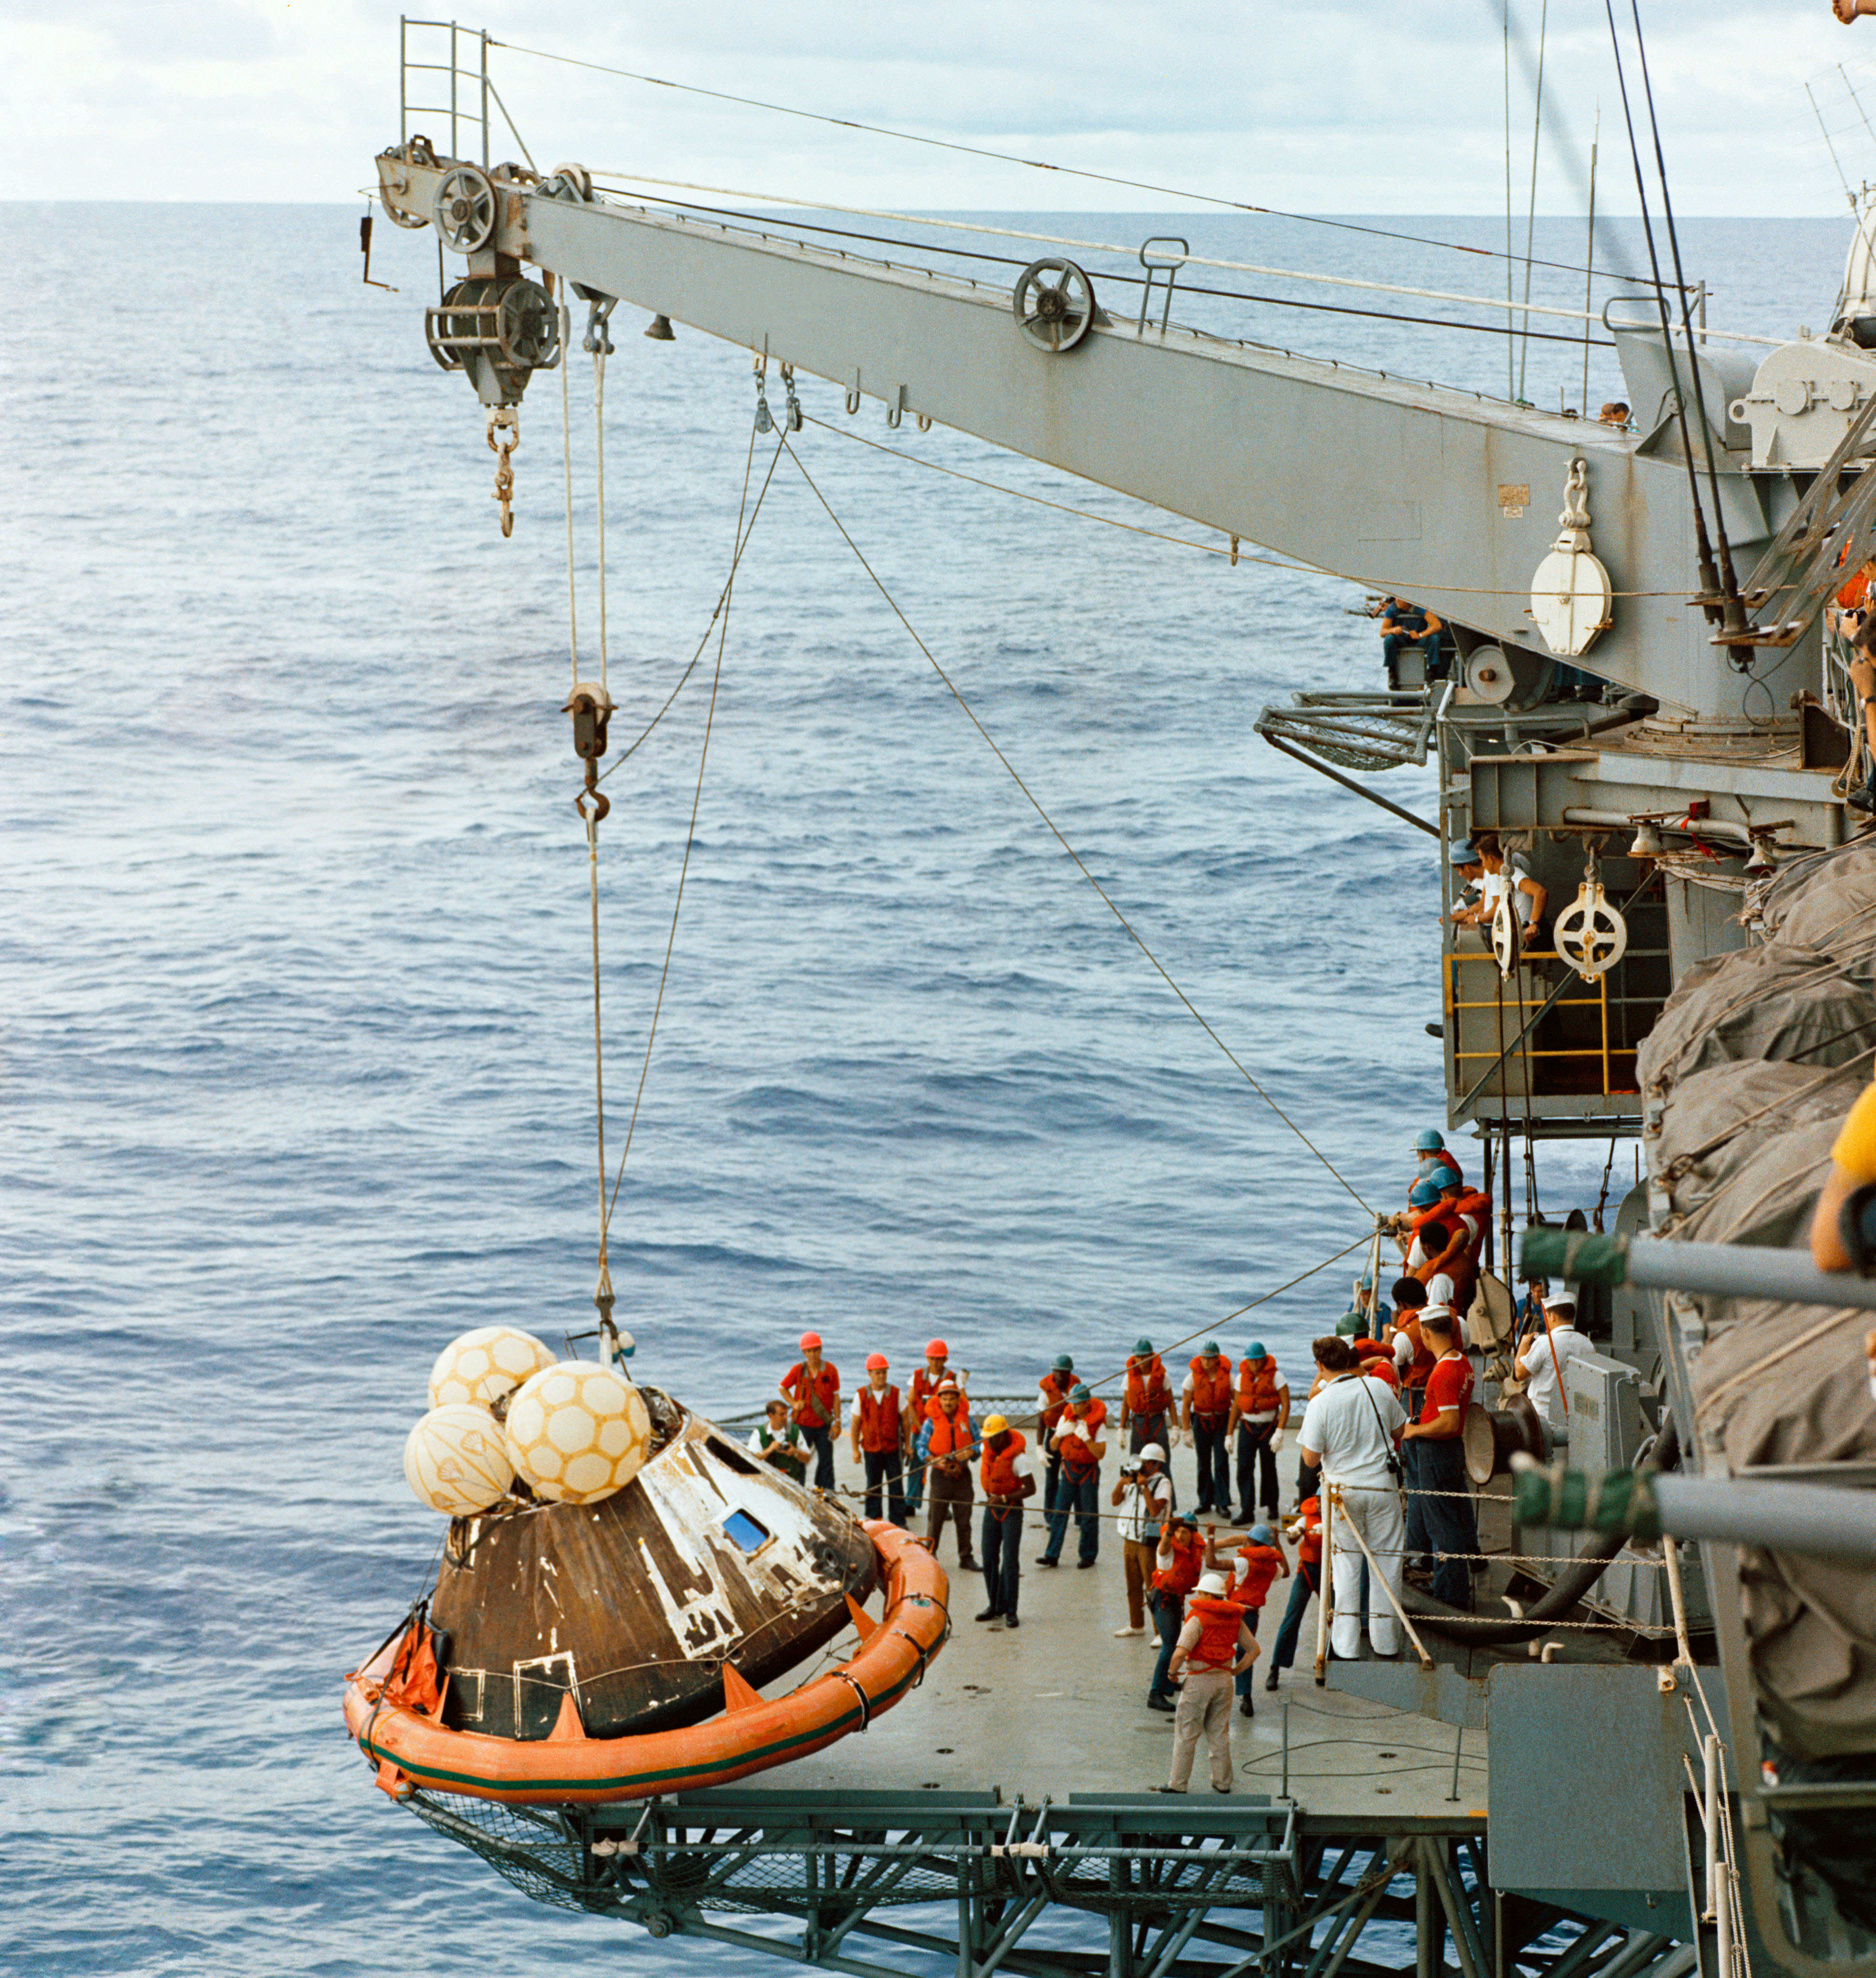 Apollo 13 Recovery Ship (page 2) - Pics about space